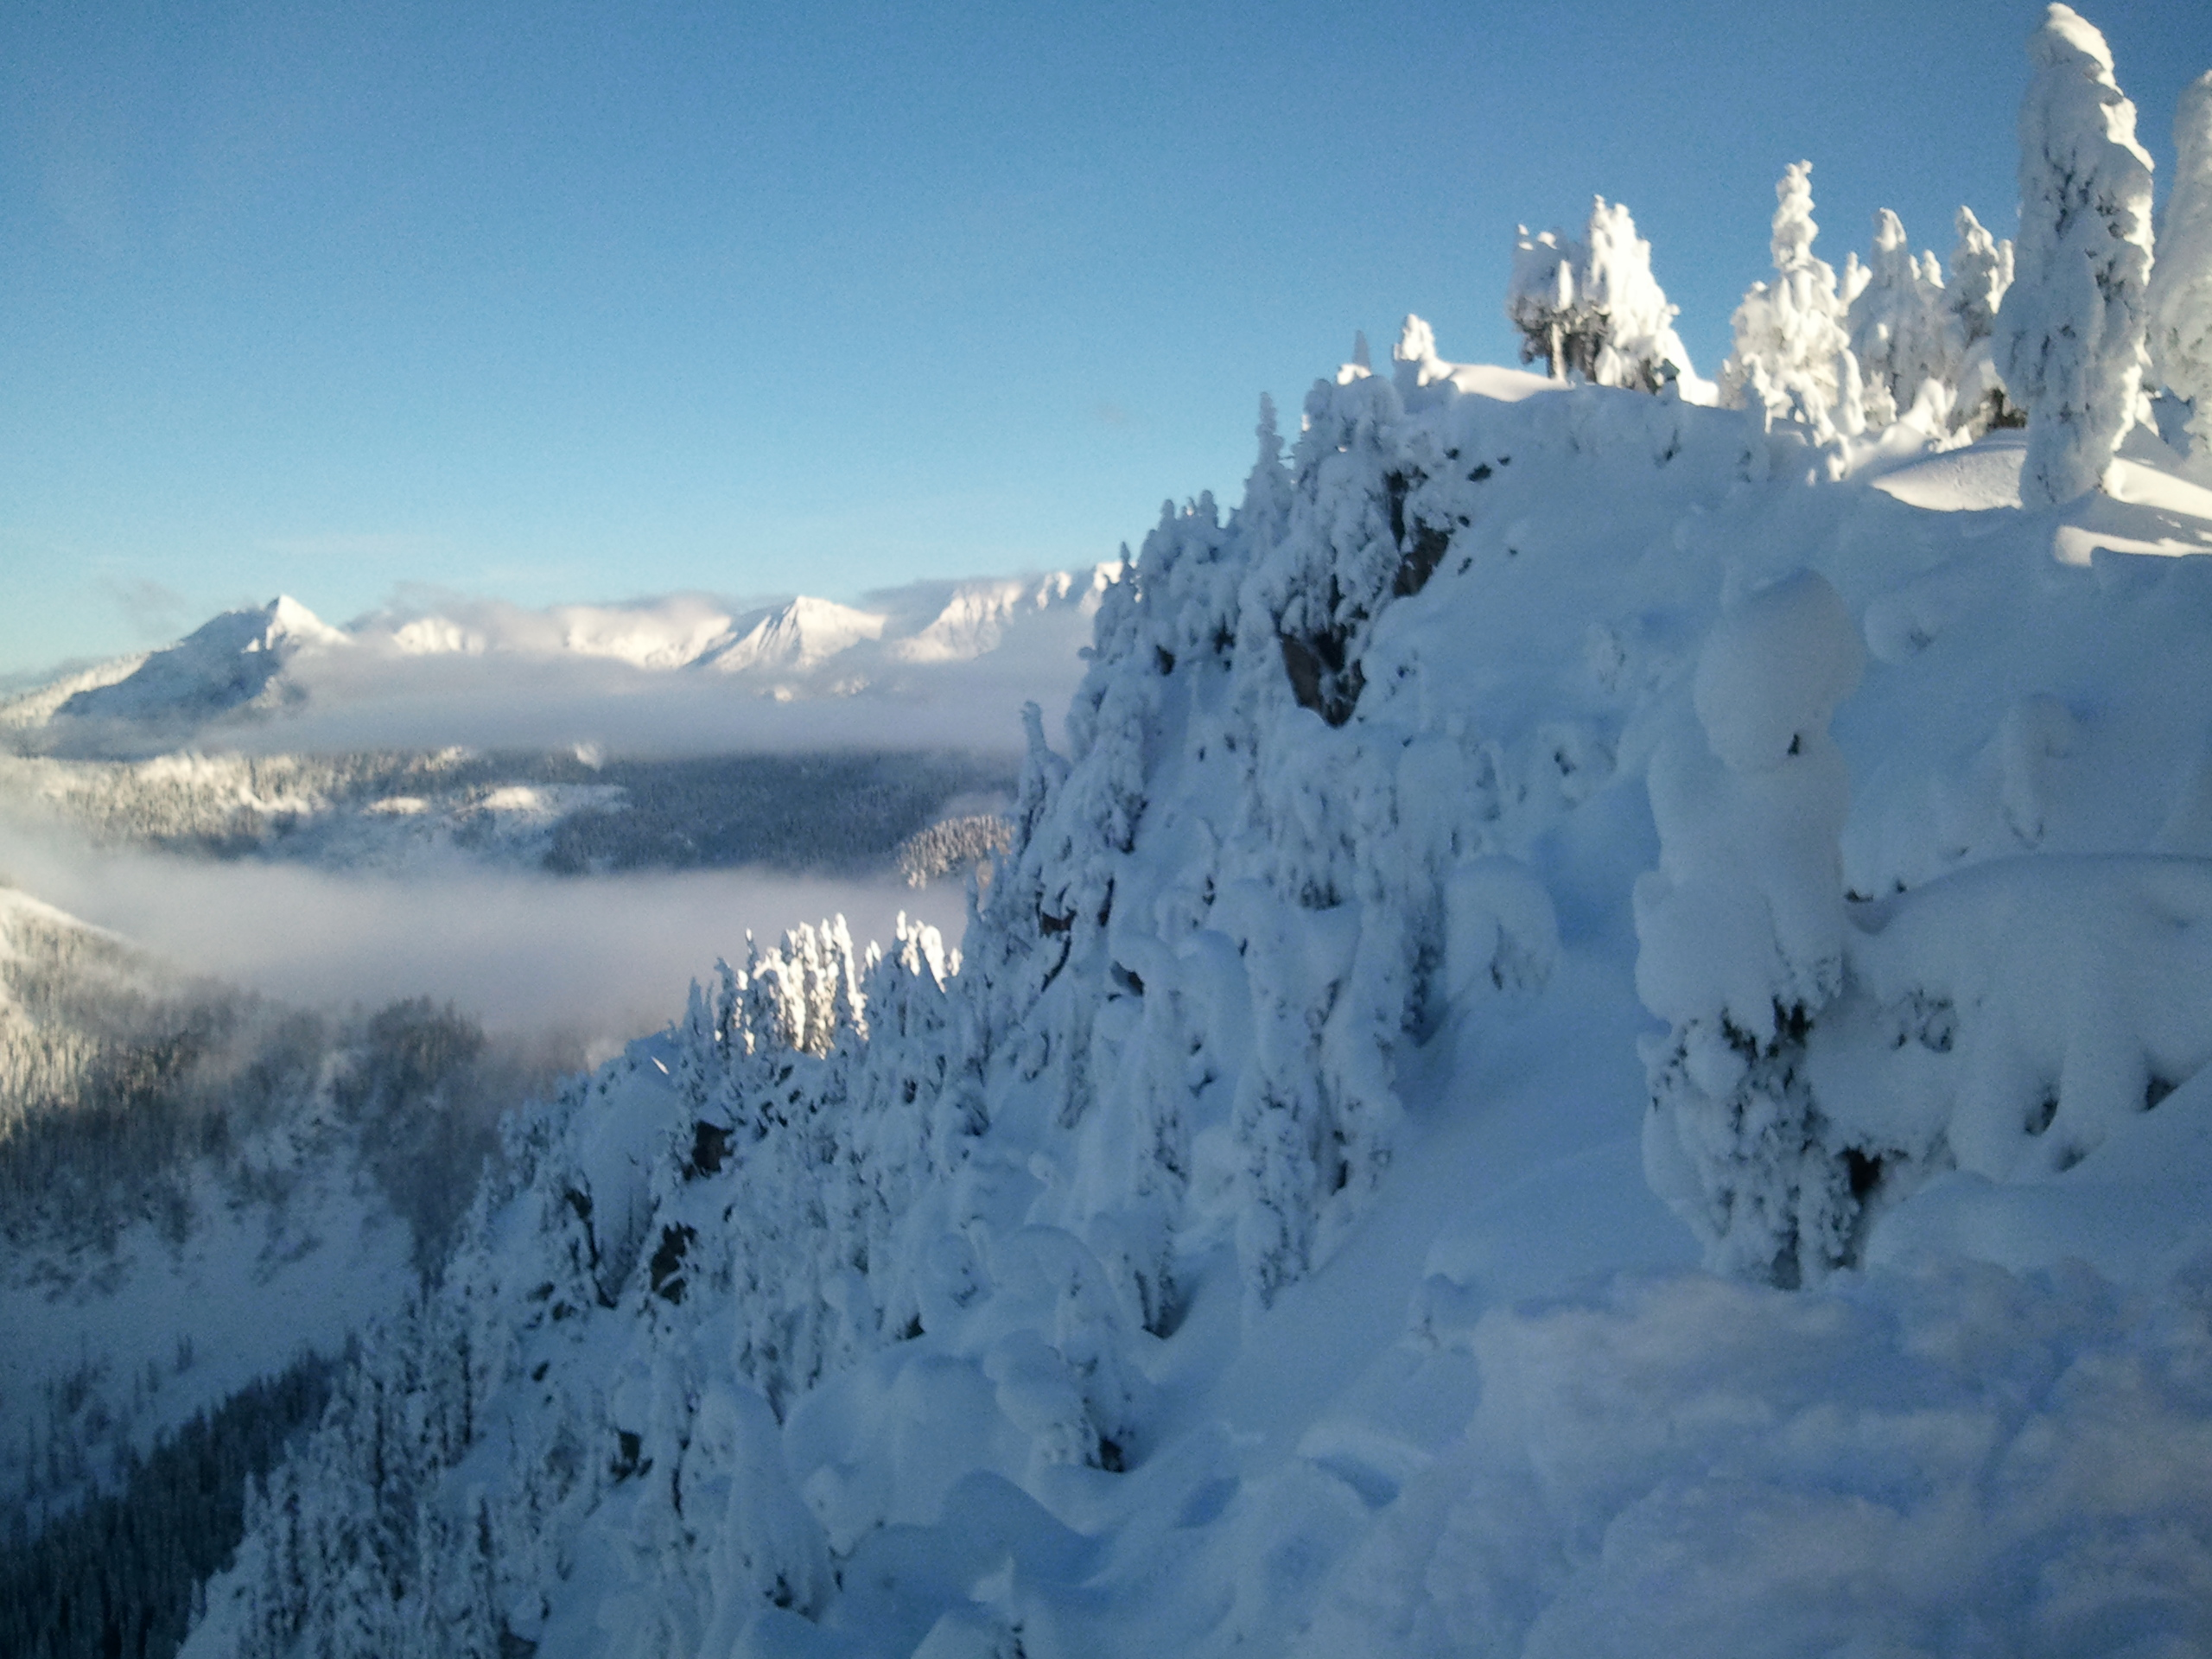 Top of the mountain, Stevens Pass